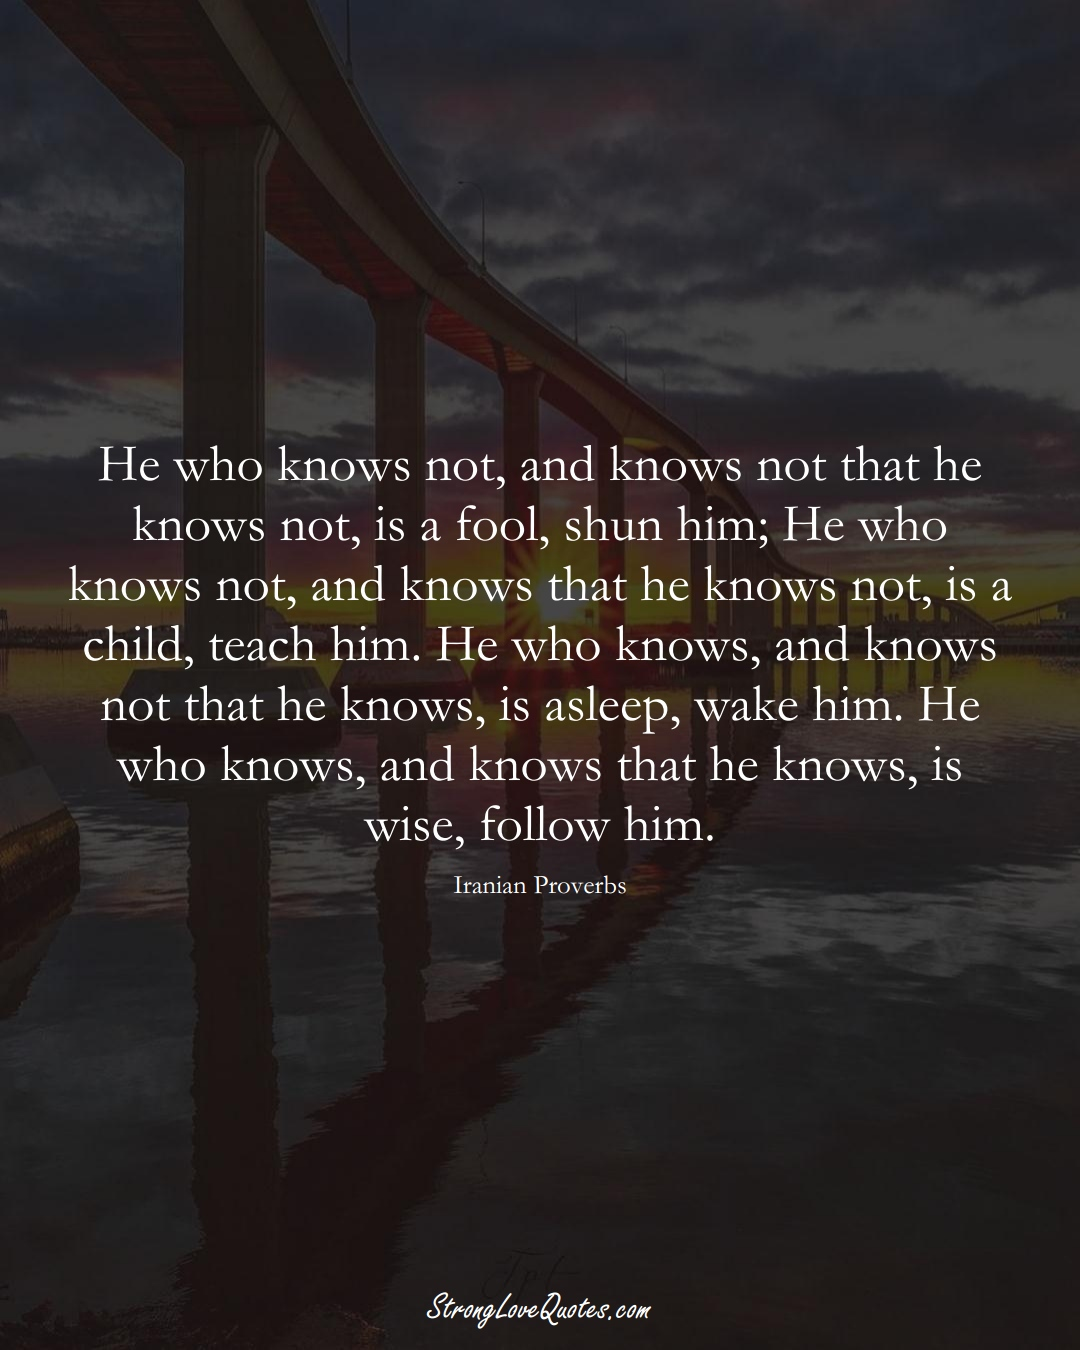 He who knows not, and knows not that he knows not, is a fool, shun him; He who knows not, and knows that he knows not, is a child, teach him. He who knows, and knows not that he knows, is asleep, wake him. He who knows, and knows that he knows, is wise, follow him. (Iranian Sayings);  #MiddleEasternSayings